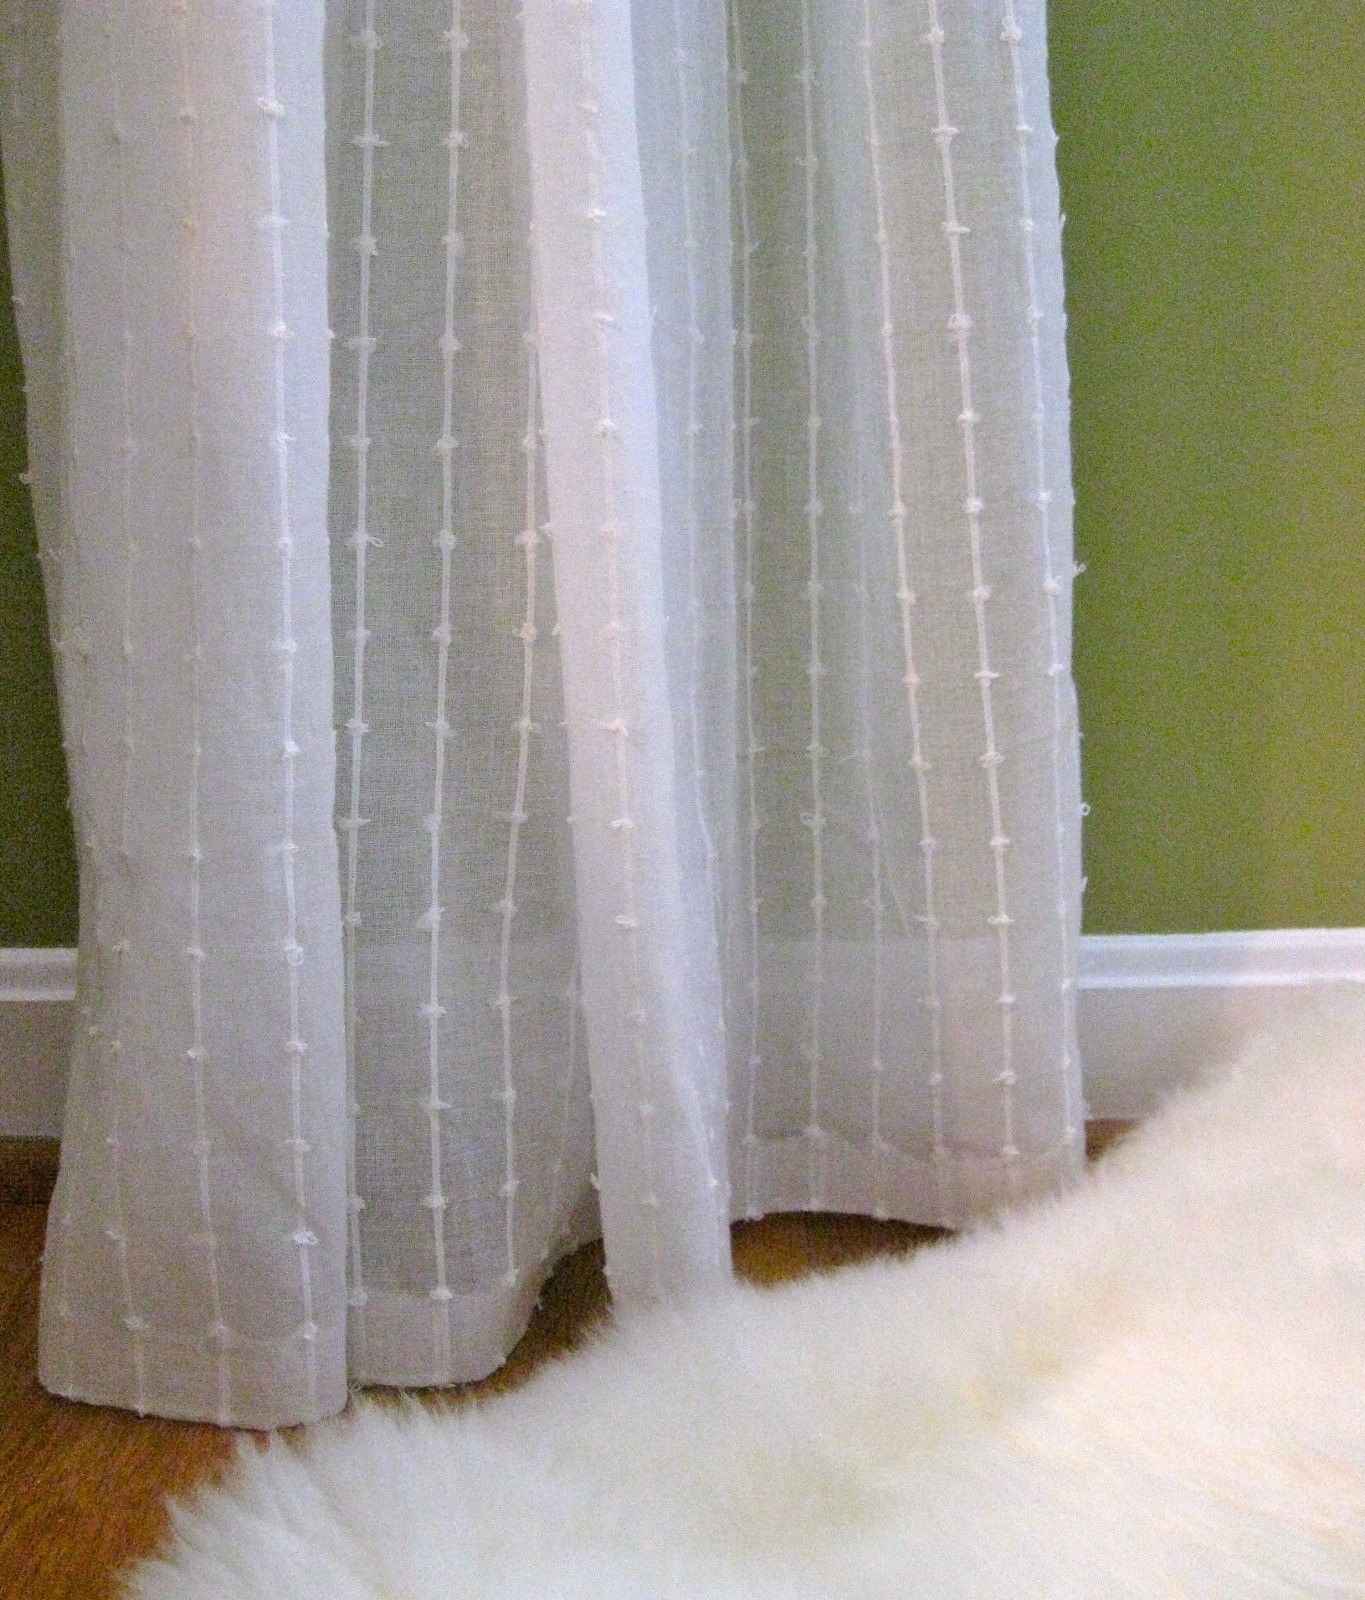 1 Nip Ikea Matilda Sheer Cotton Curtains White 2 Panels Each 55 X For White Sheer Cotton Curtains (Image 1 of 15)